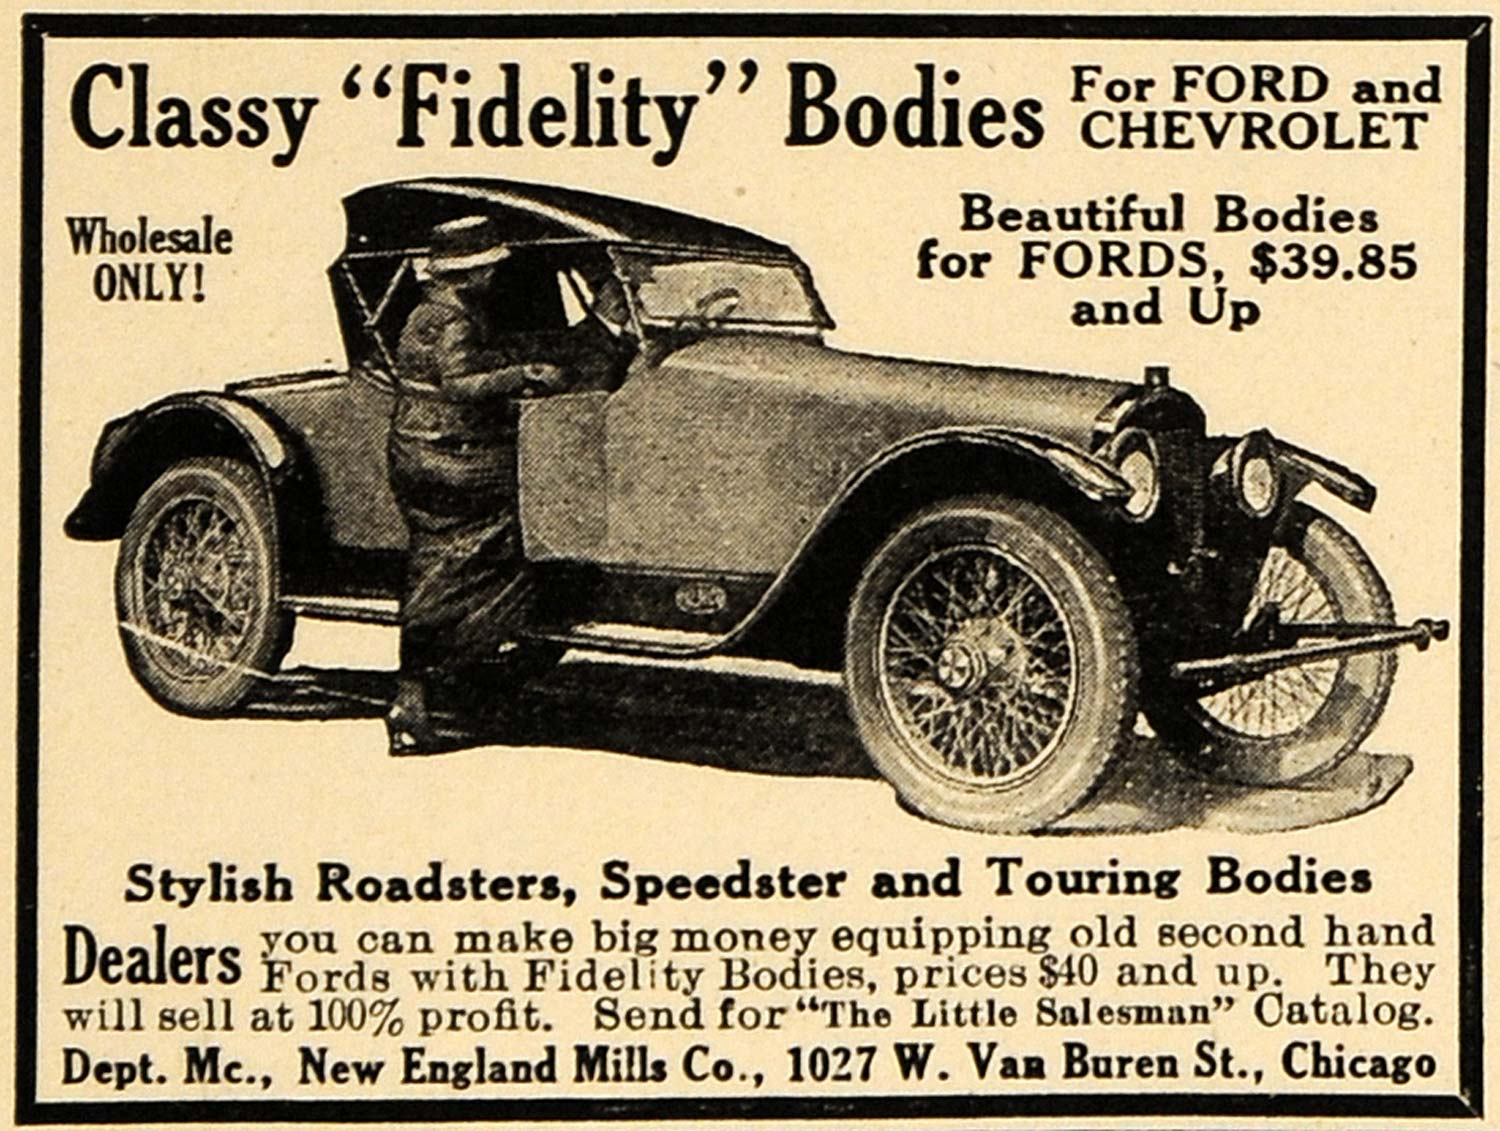 1921 Ad Ford Chevrolet Fidelity Body Roadster Speedster - ORIGINAL ILW1